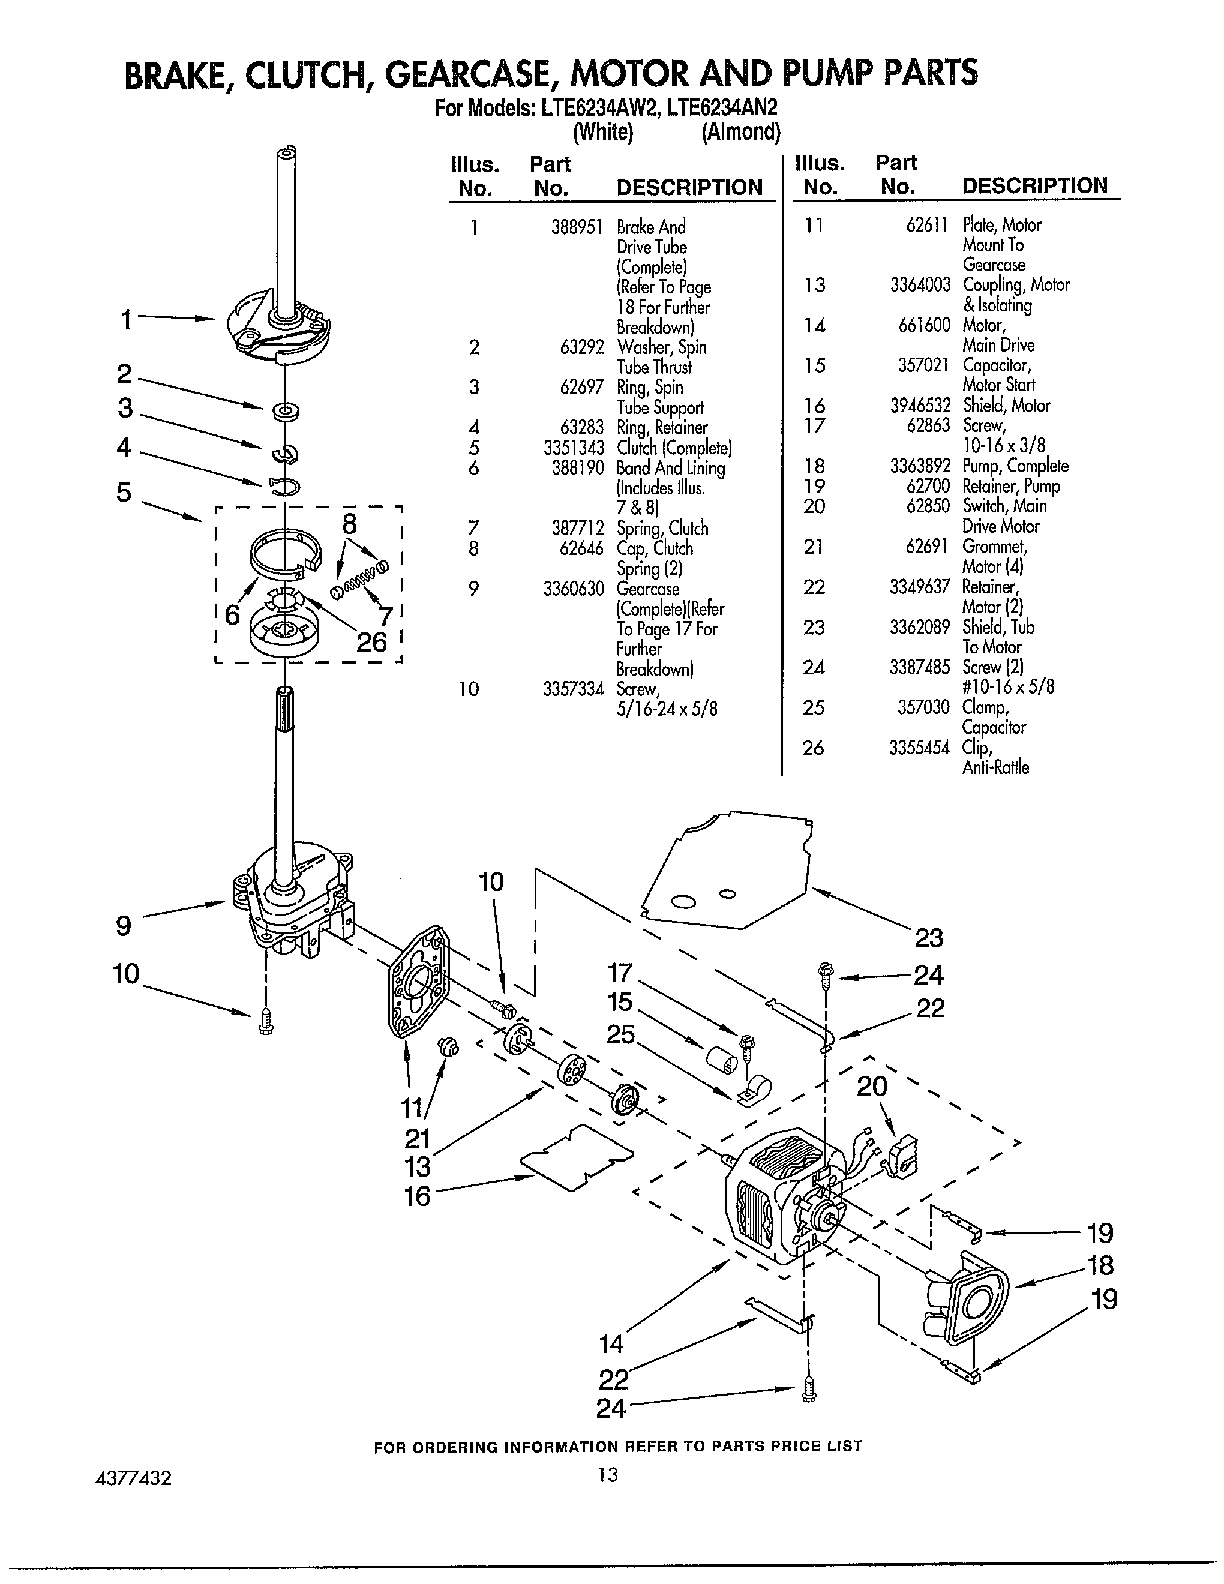 medium resolution of whirlpool lte6243an2 brake clutch and motor parts diagram